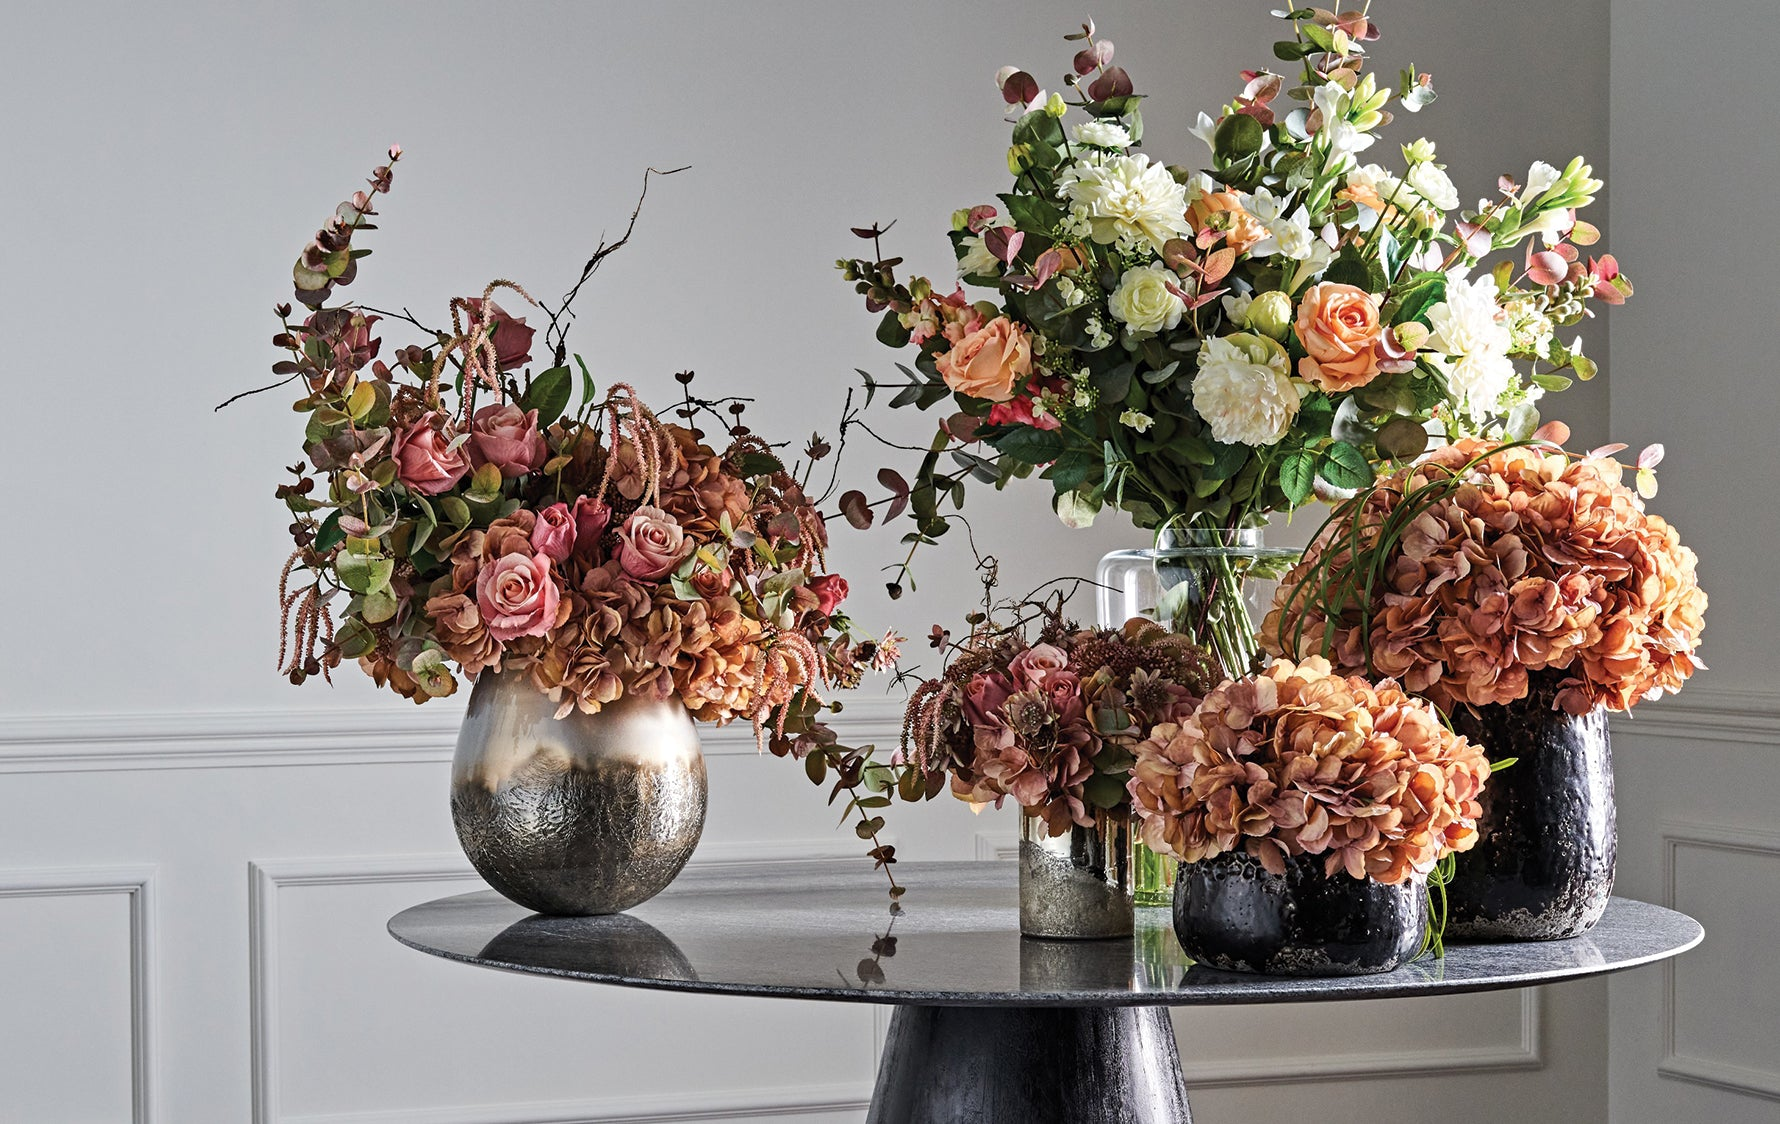 Bring Colour into your Home with Winter Florals | How to Decorate your Home for Winter | Read more in the LuxDeco Style Guide